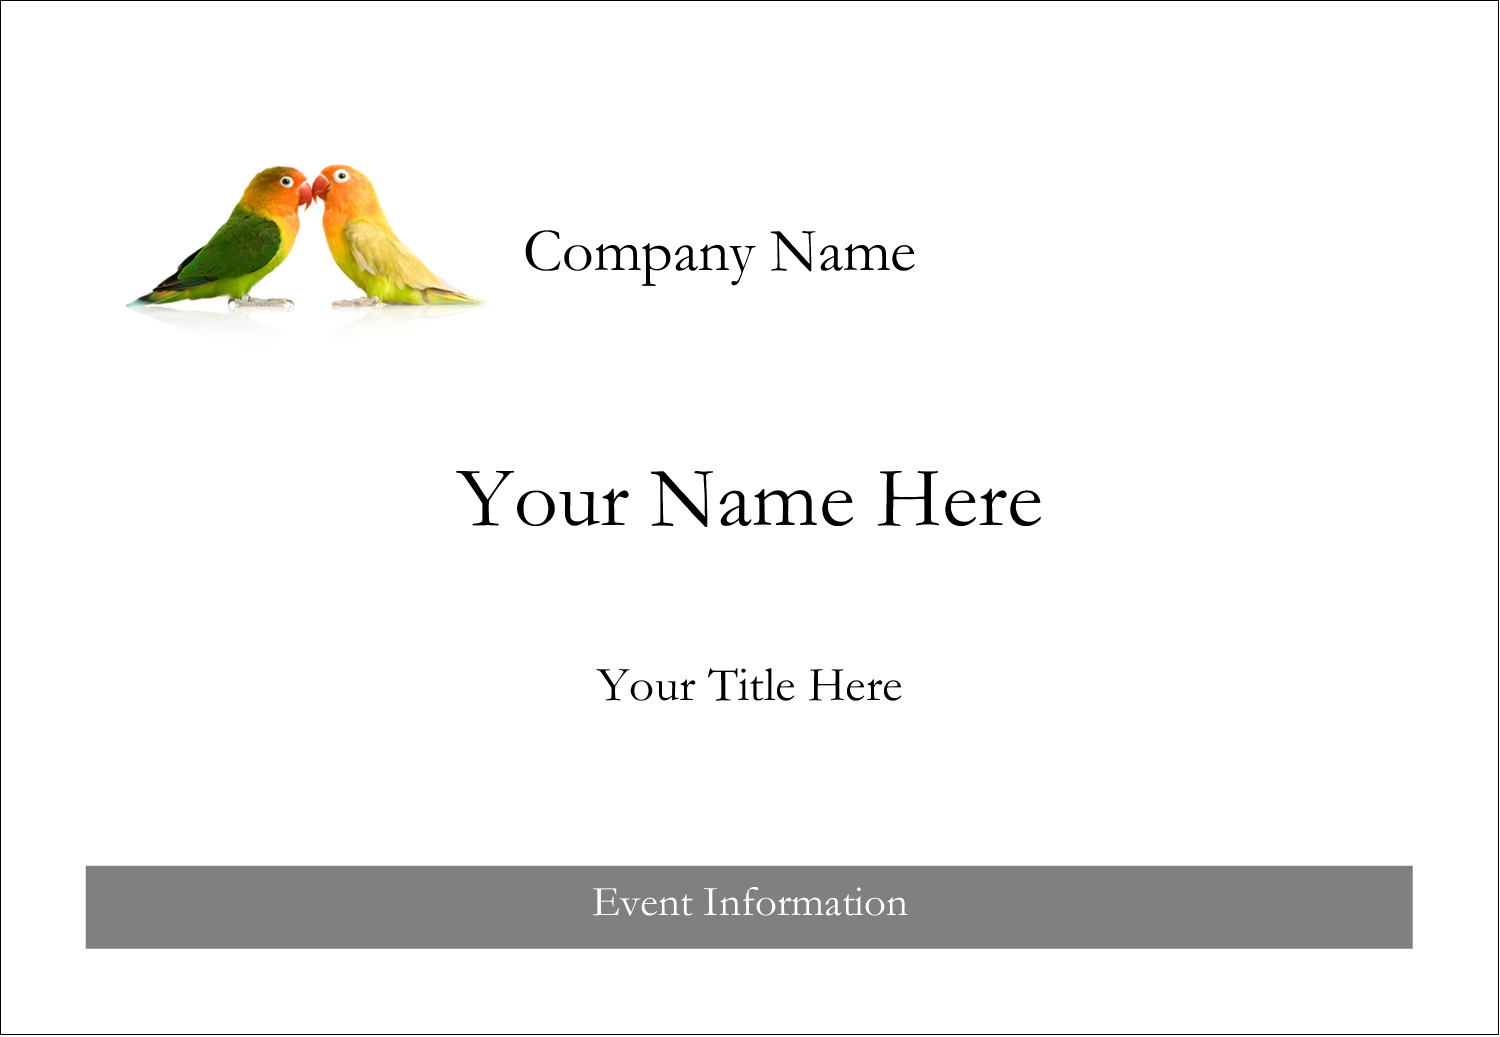 "3⅜"" x 2⅓"" Name Badge - Birds in Nature"